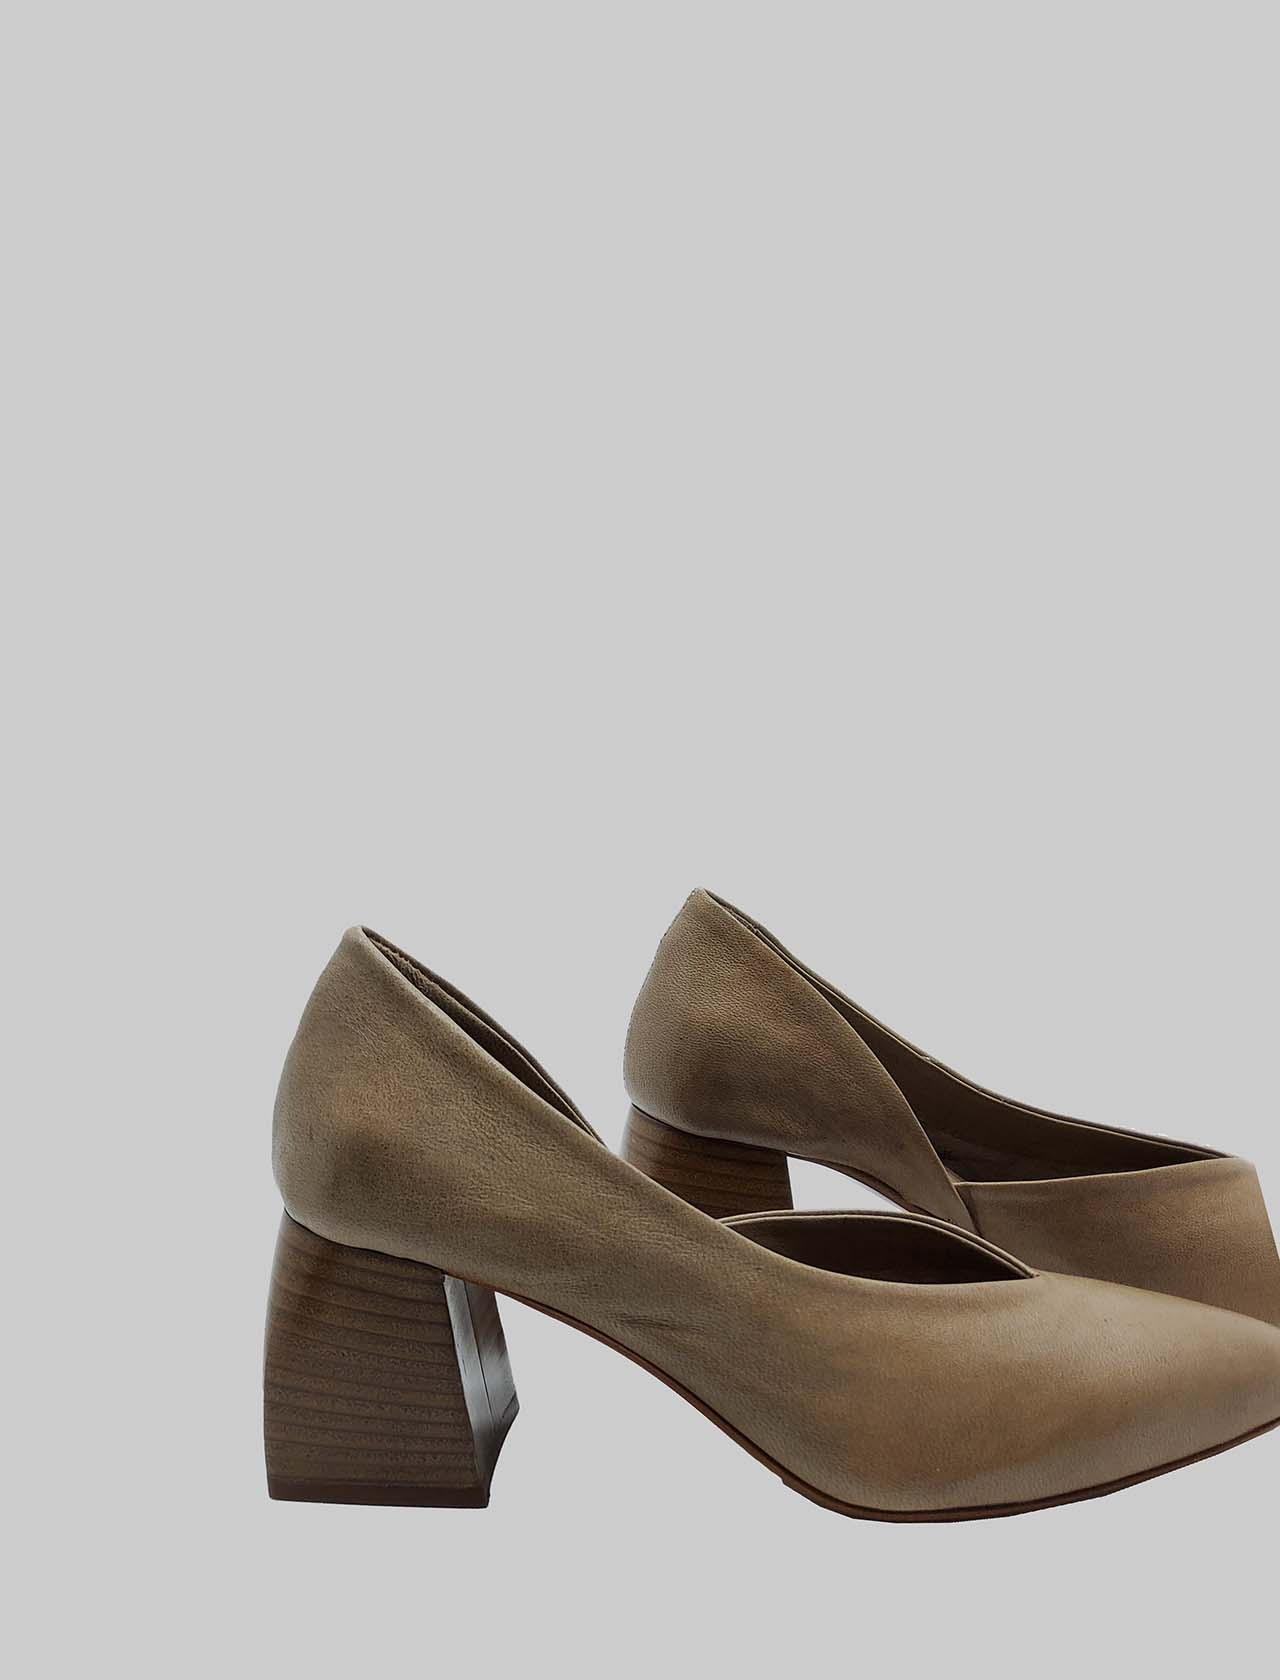 Women's Shoes Décolleté in Taupe Leather with Leather Heel and Pointed Toe Spatarella   Pumps   SP30023